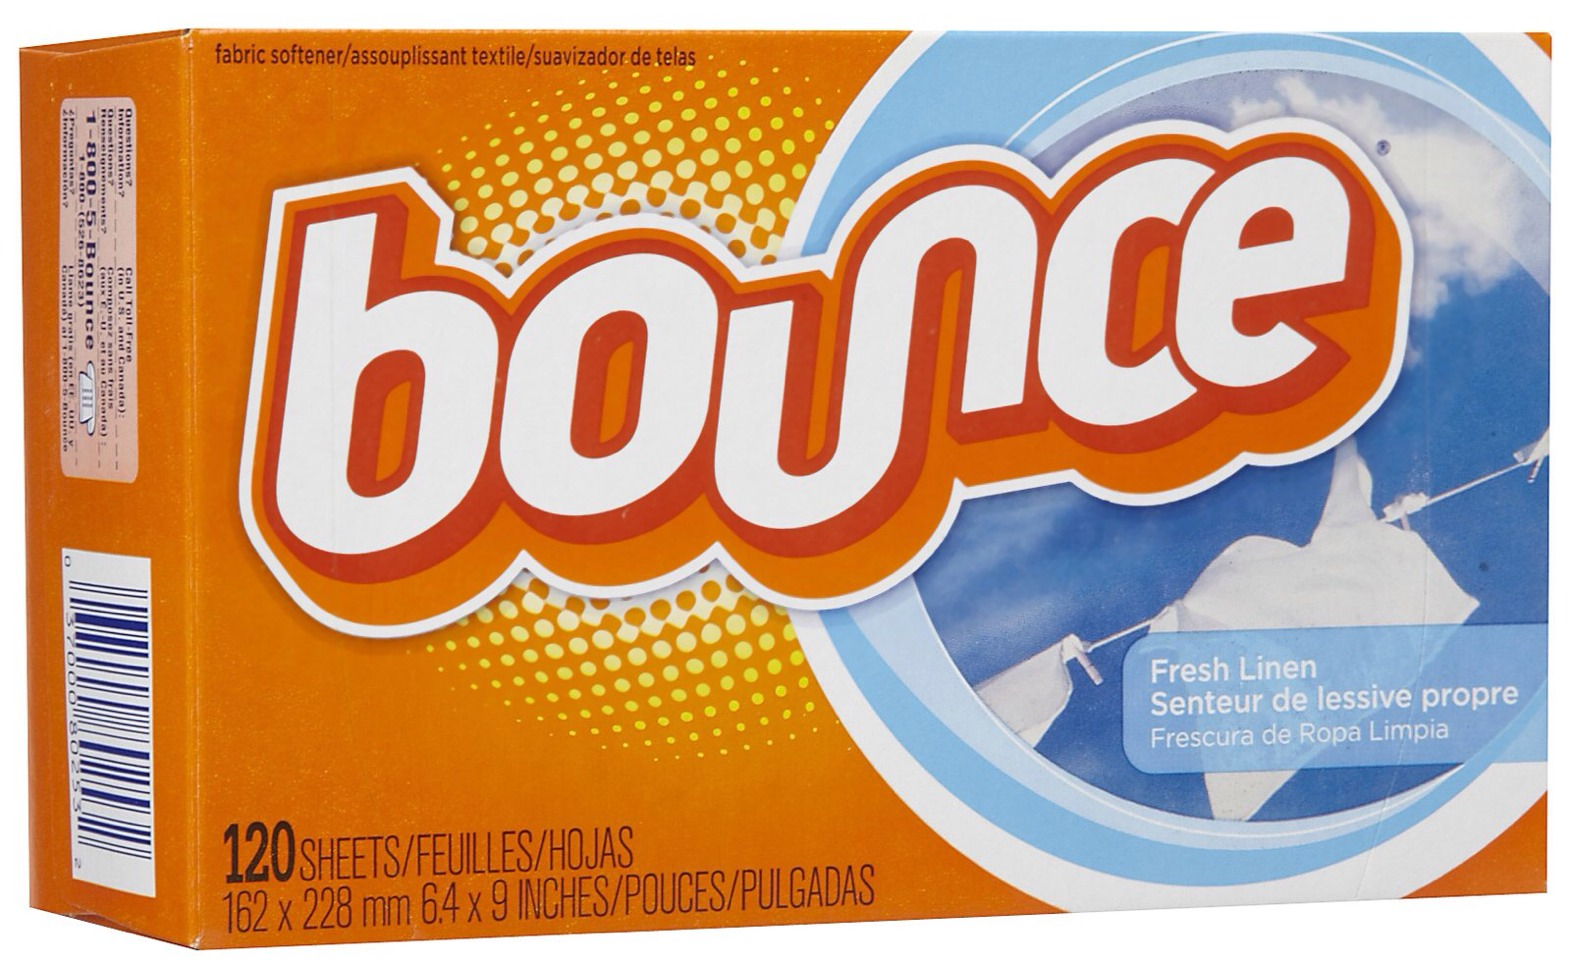 Rub one of this dryer sheets and static will disappear. If your wearing a hat rub it on the inside. Hope it helps :)